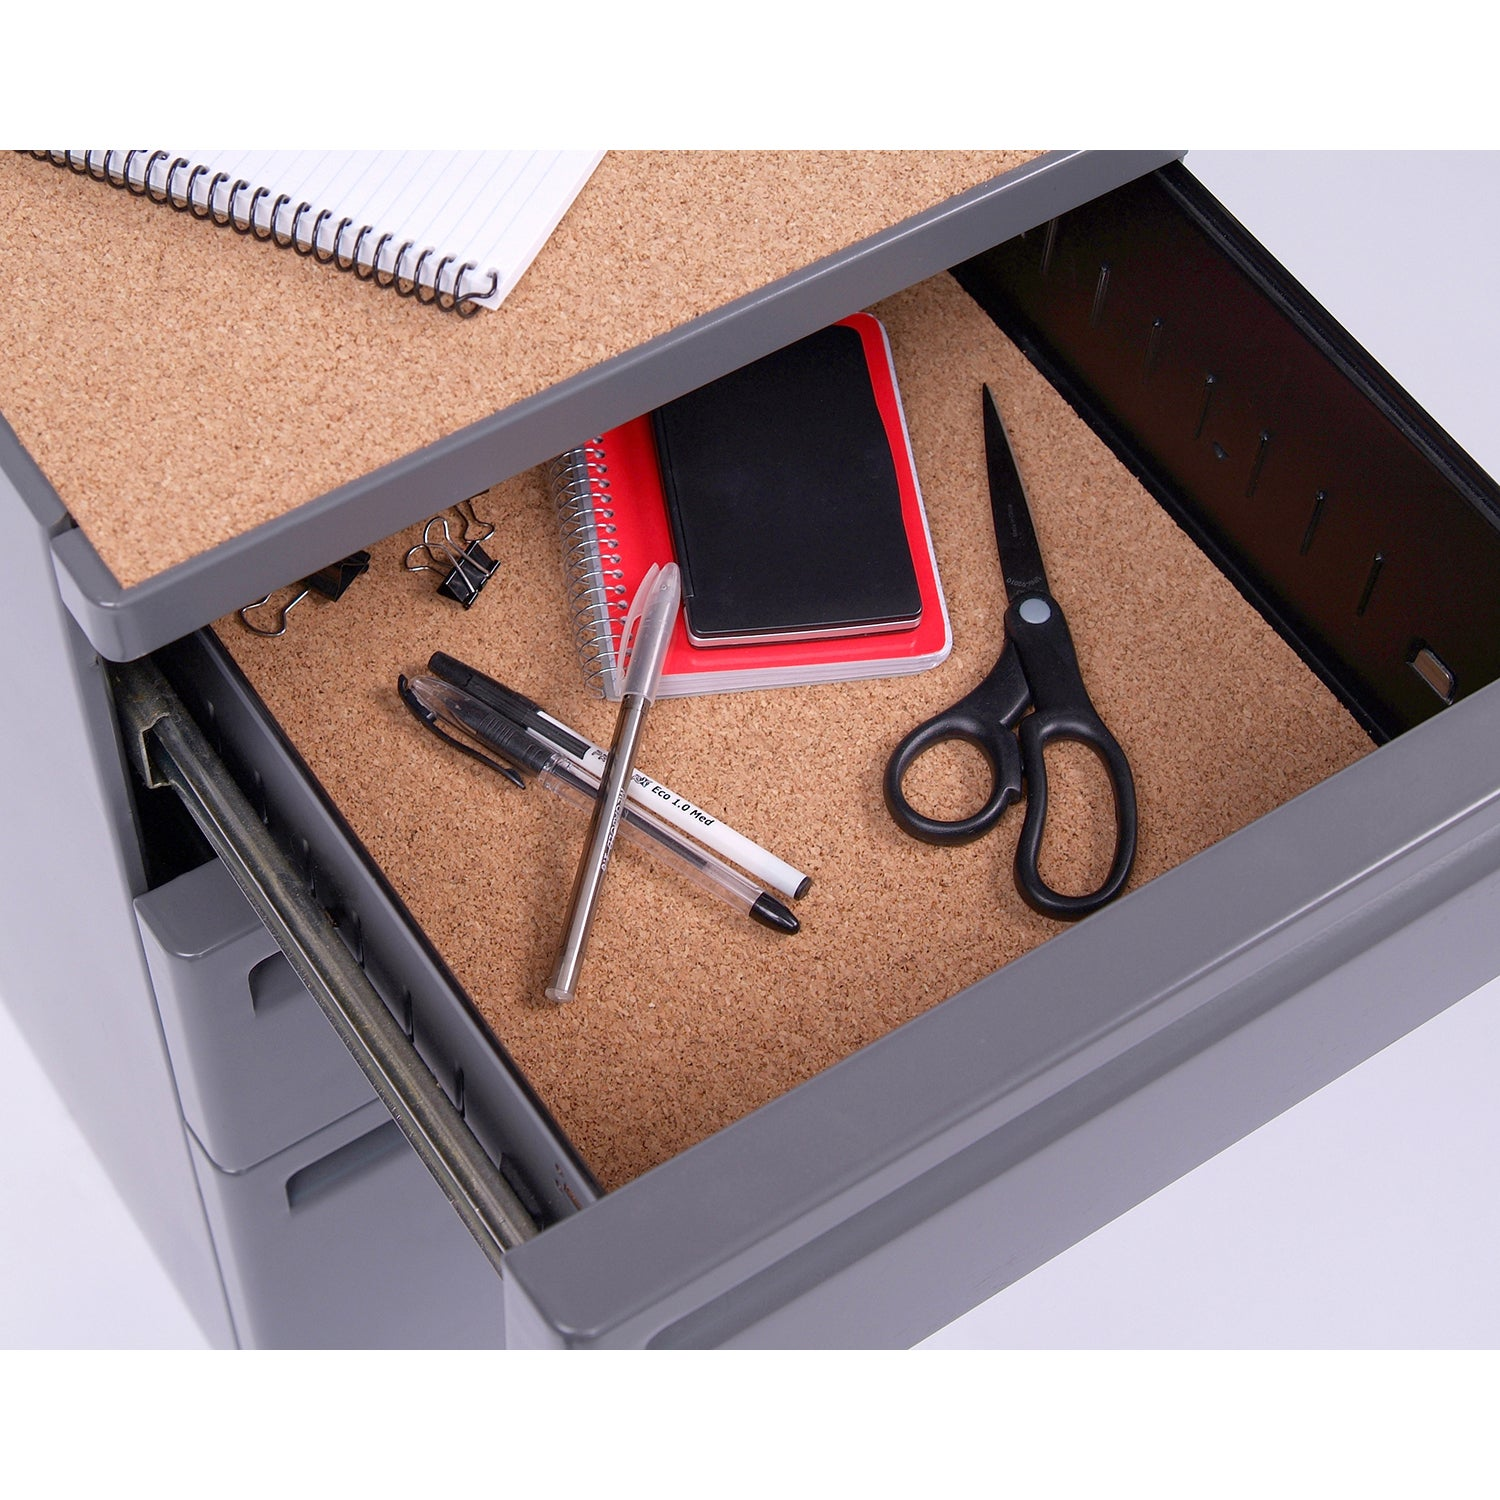 of stonegable copy making img scented liner drawer